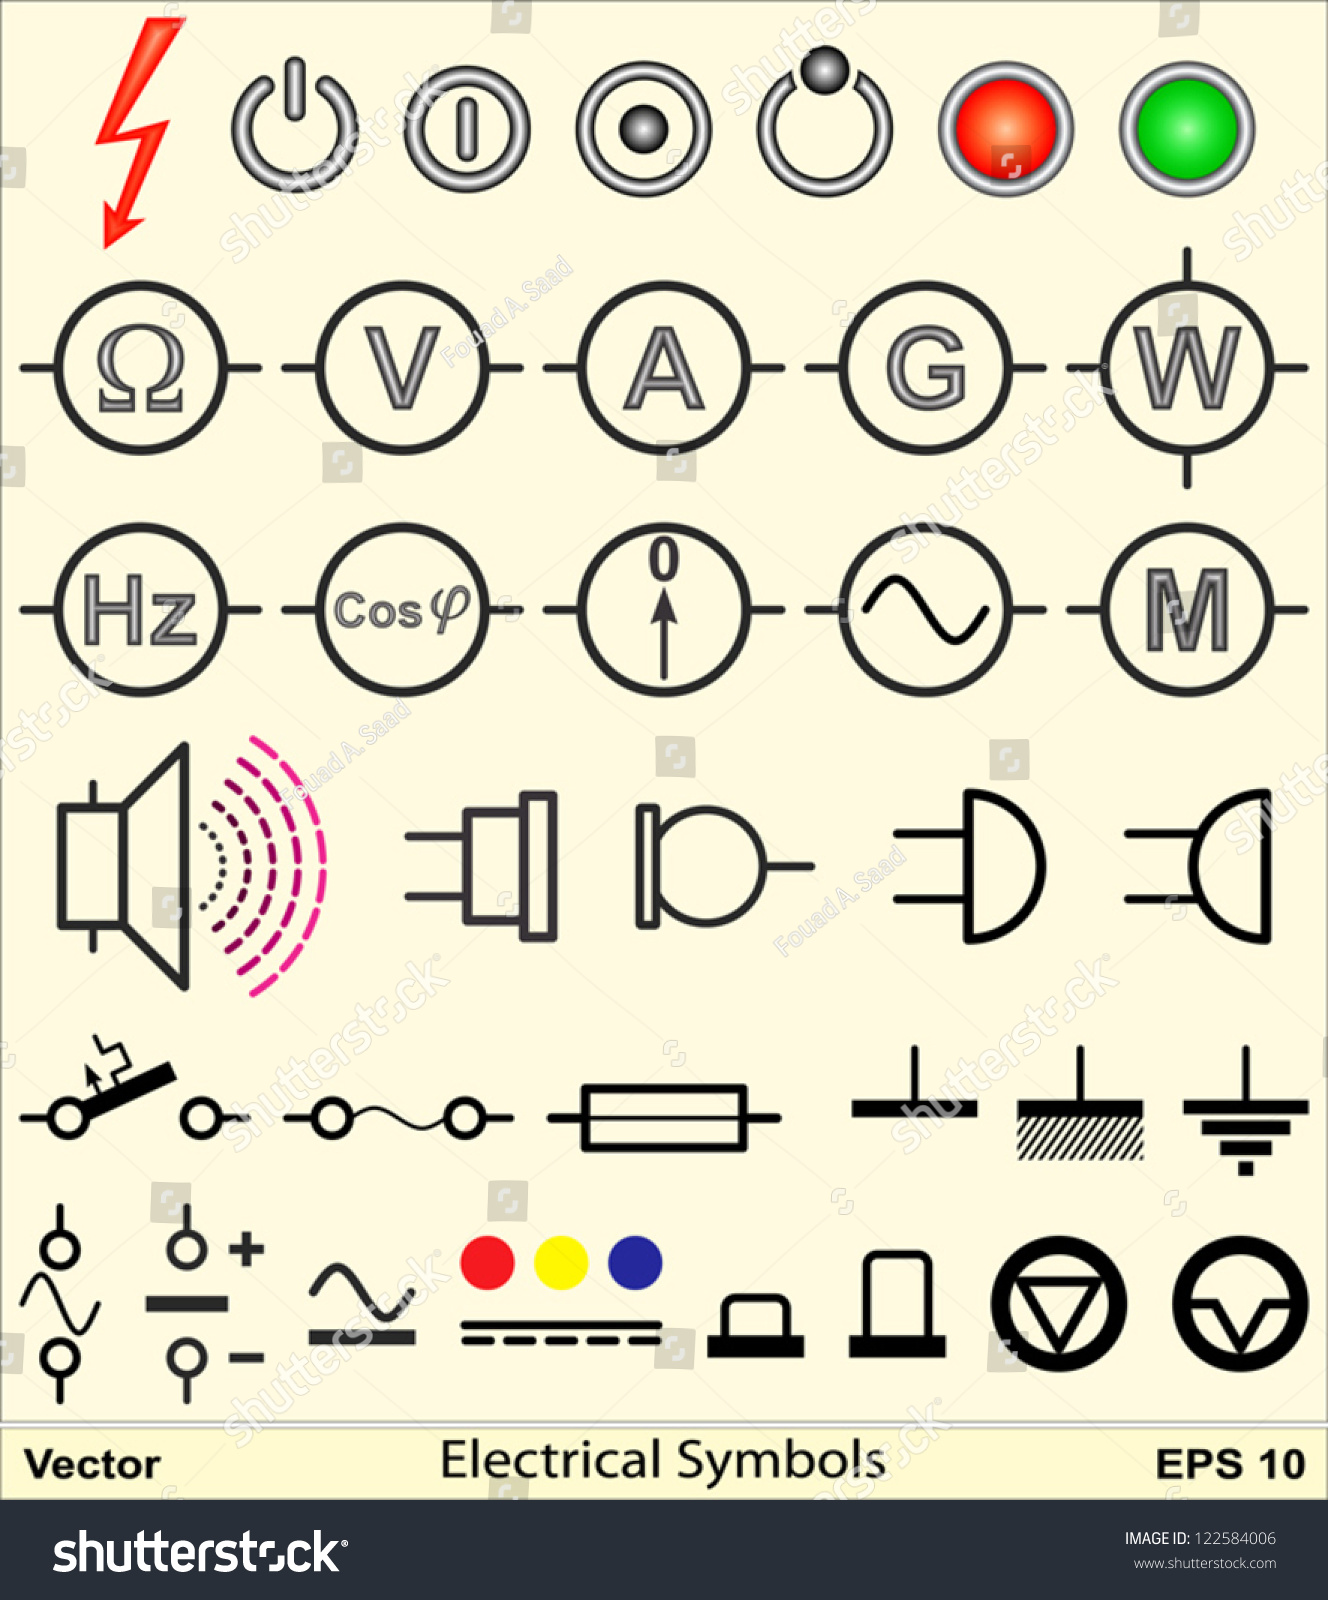 Snap Ss Electric Circuits And Symbols Mini Physics Learn Electronic Circuit Diagram Cxa1034pm Audio Amplifier Electrical 122584006 Shutterstock